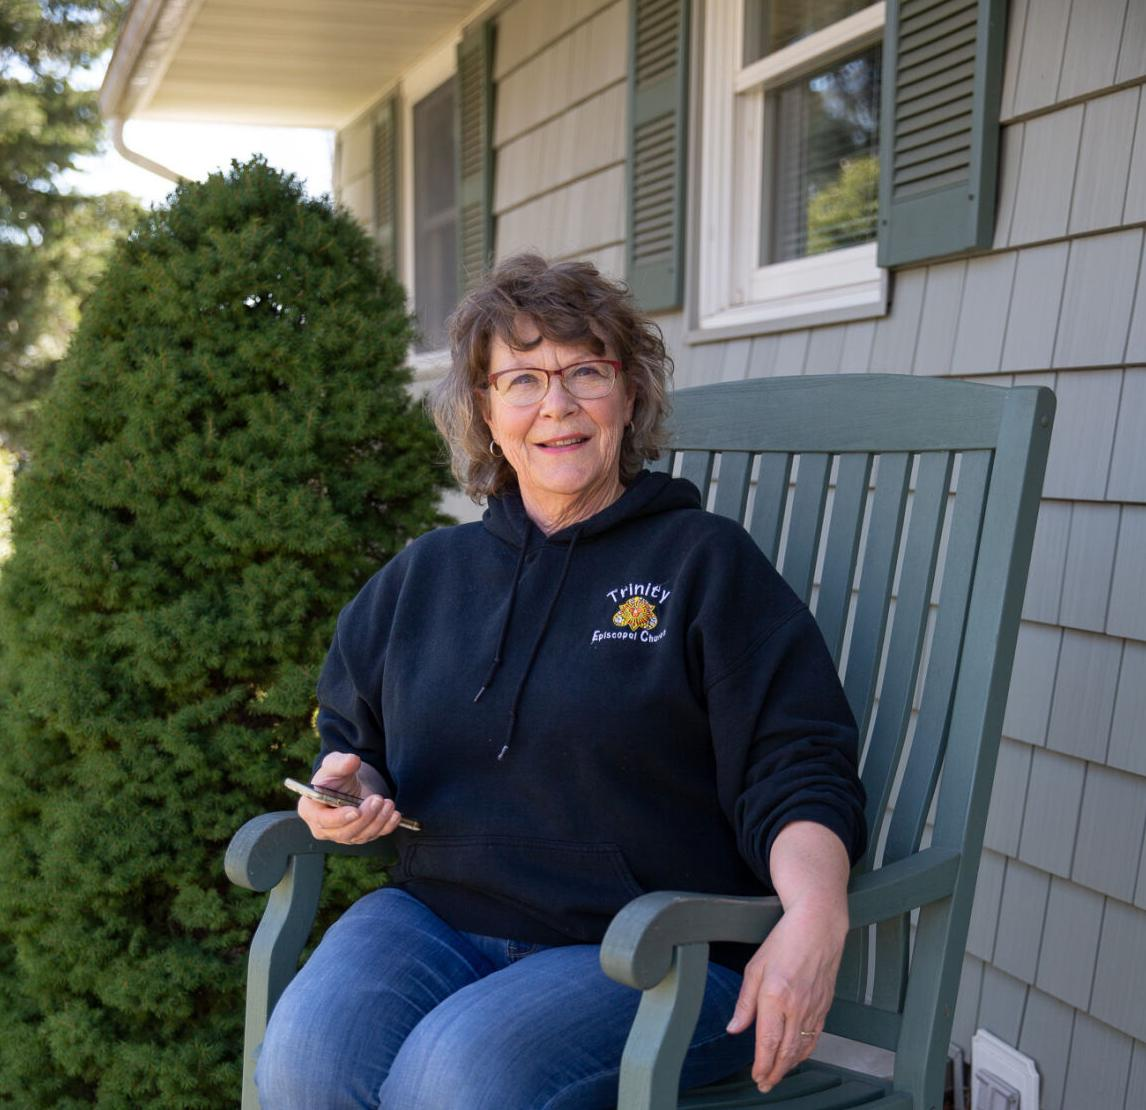 In the spirit of Easter, woman finds a higher calling